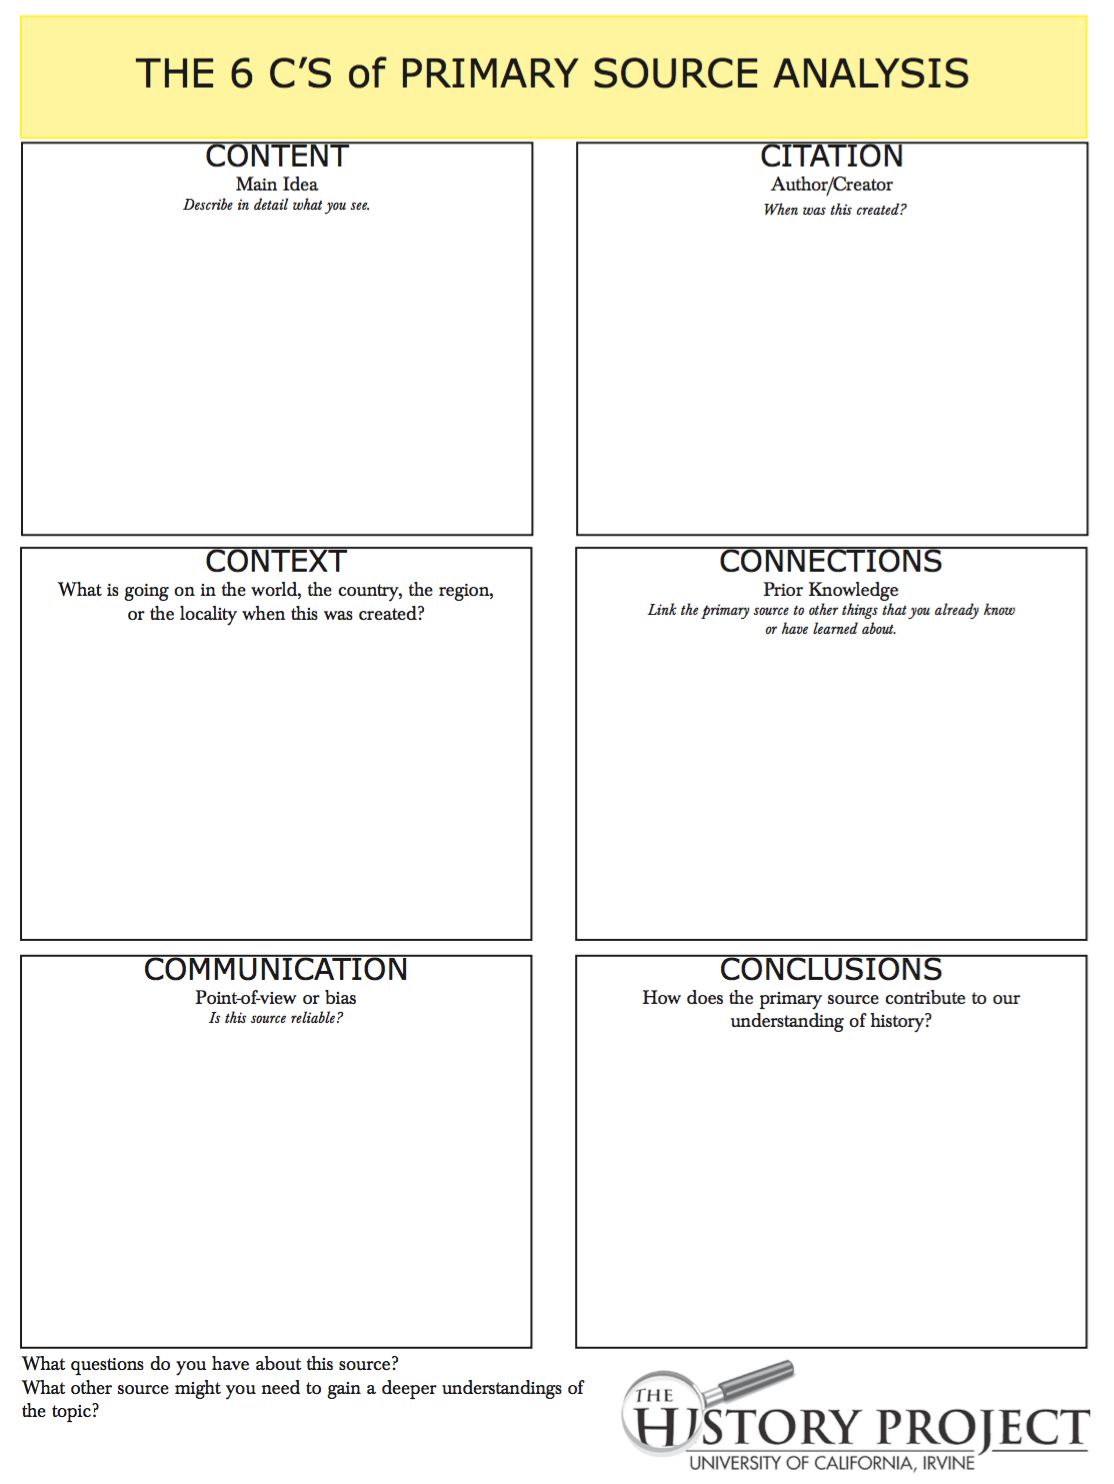 Worksheets Primary And Secondary Sources Worksheet 6 cs for analyzing primary sources doing social studies screen shot 2016 03 at 12 08 25 pm